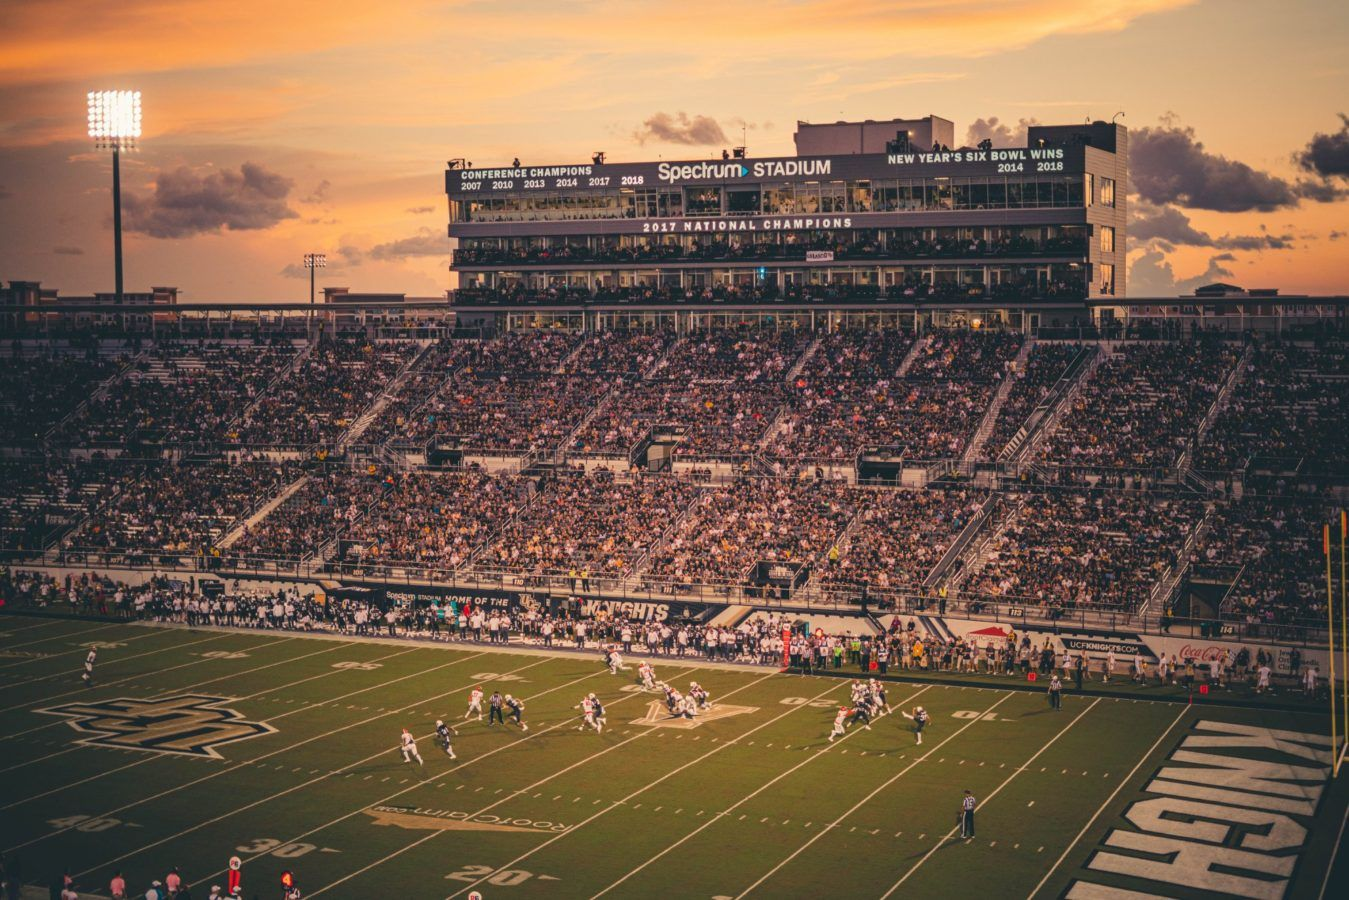 Ucf Exploring Potential Spectrum Stadium Expansion Football Stadium Digest University Of Central Florida Explore Stadium